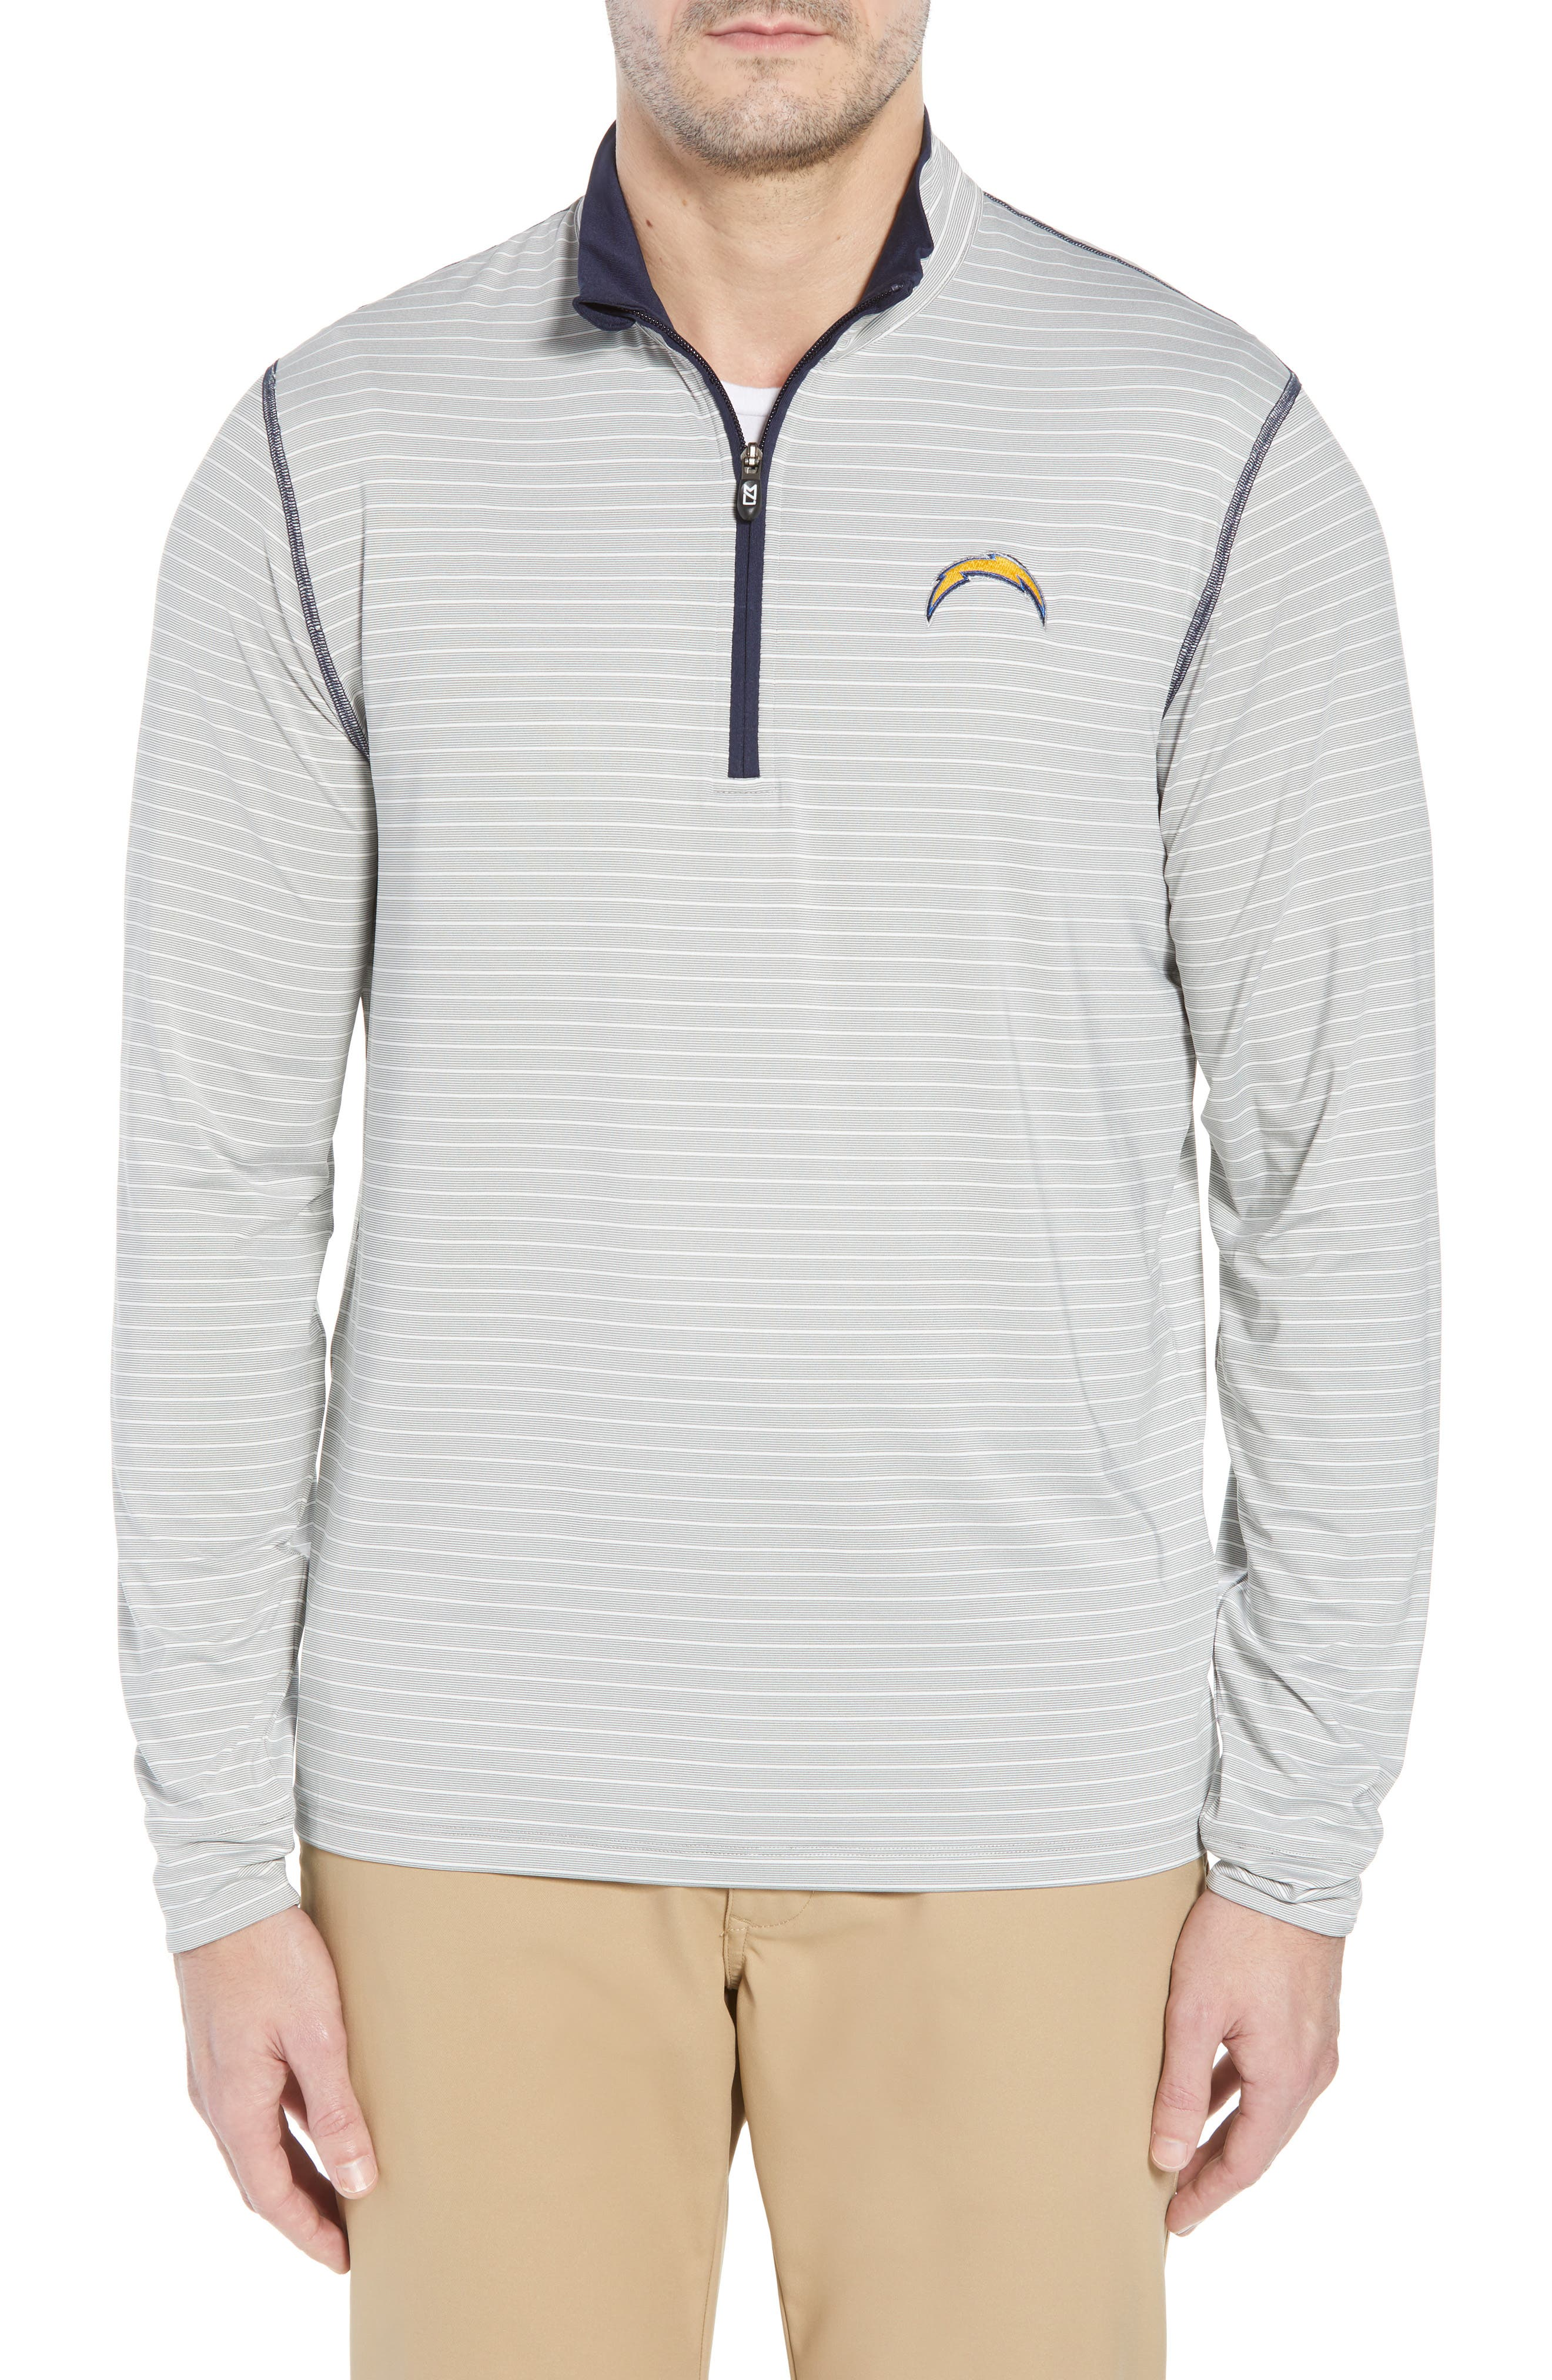 Meridian - Los Angeles Chargers Regular Fit Half Zip Pullover,                         Main,                         color, NAVY